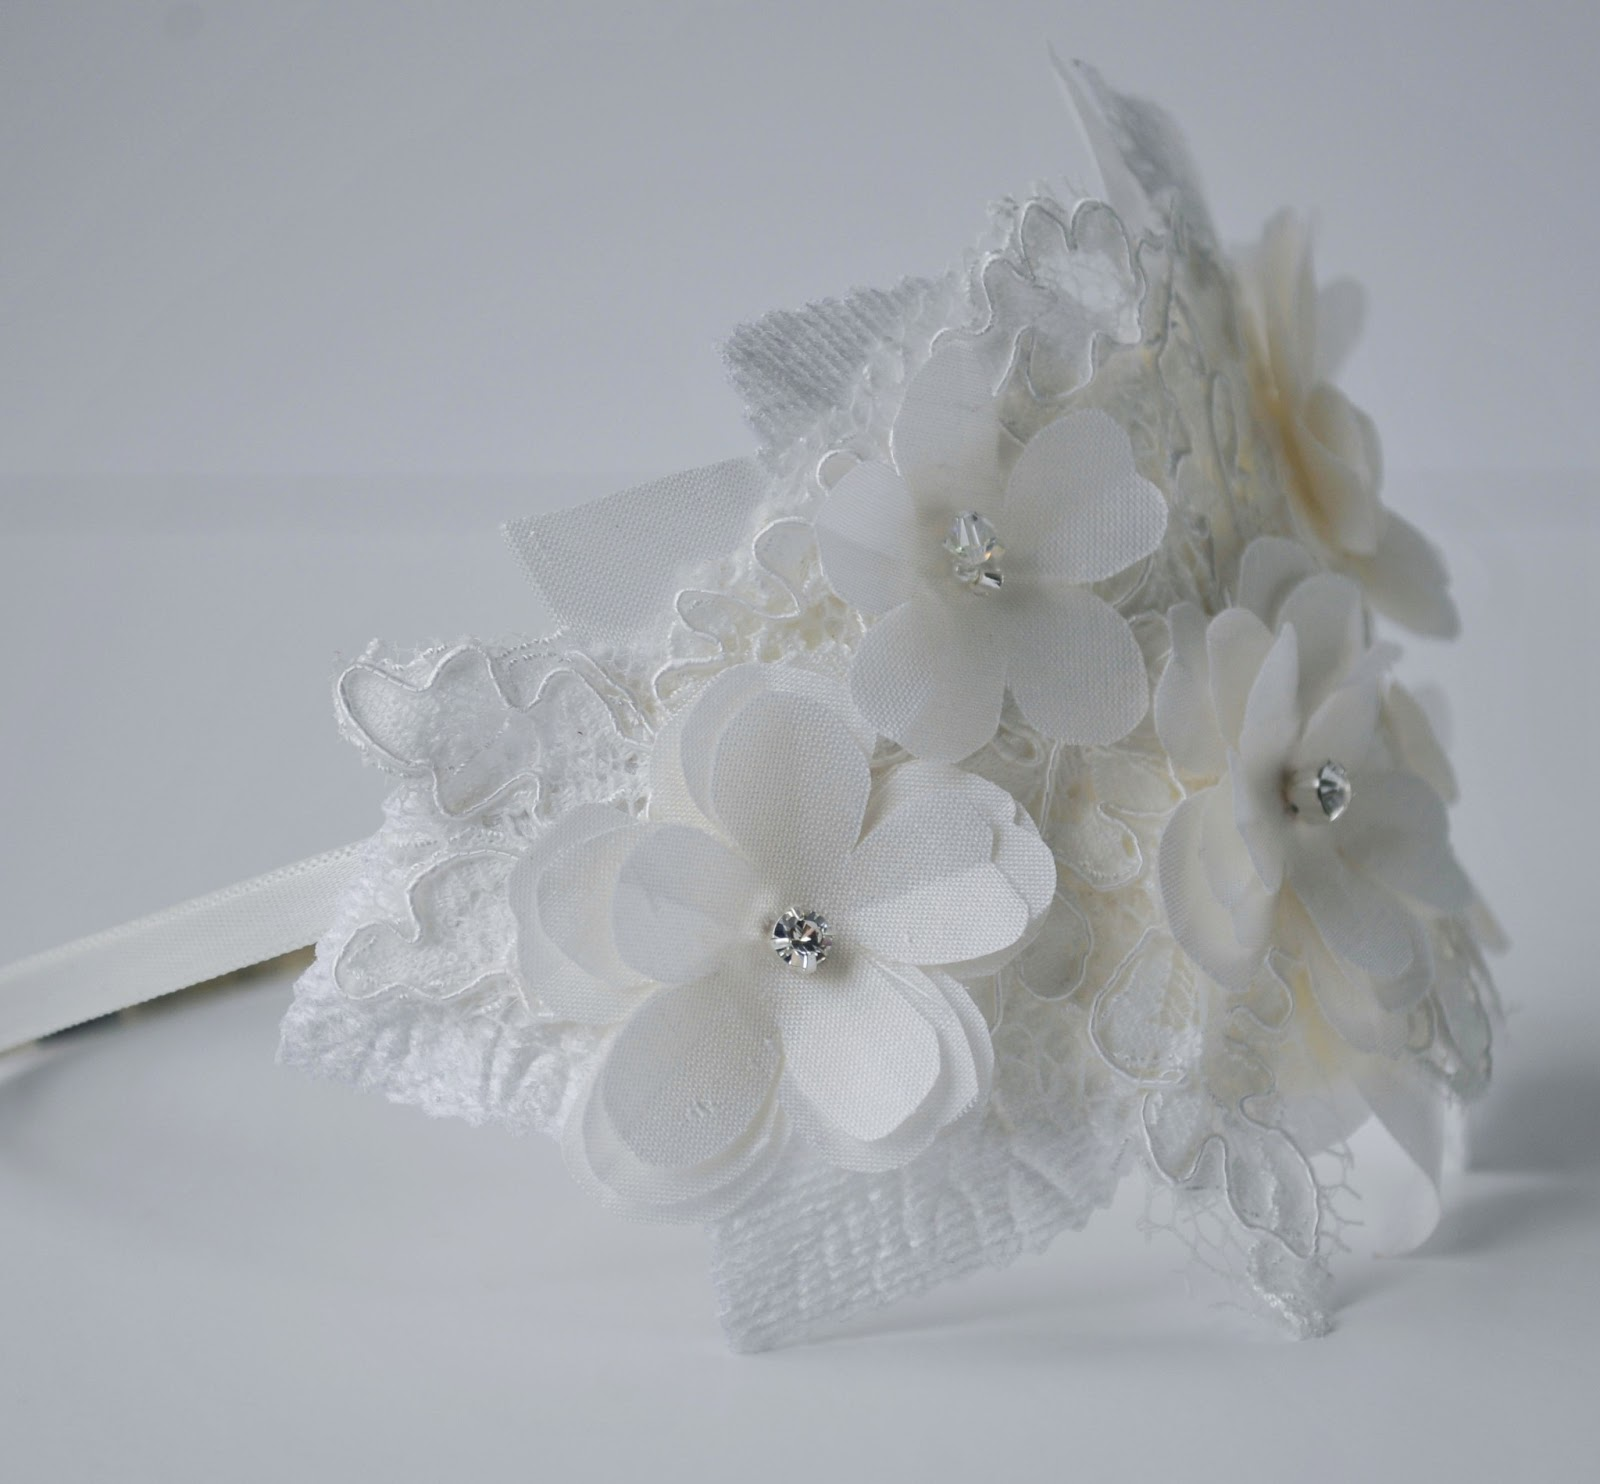 grace designs: canberra etsy seller: wedding hair accessories